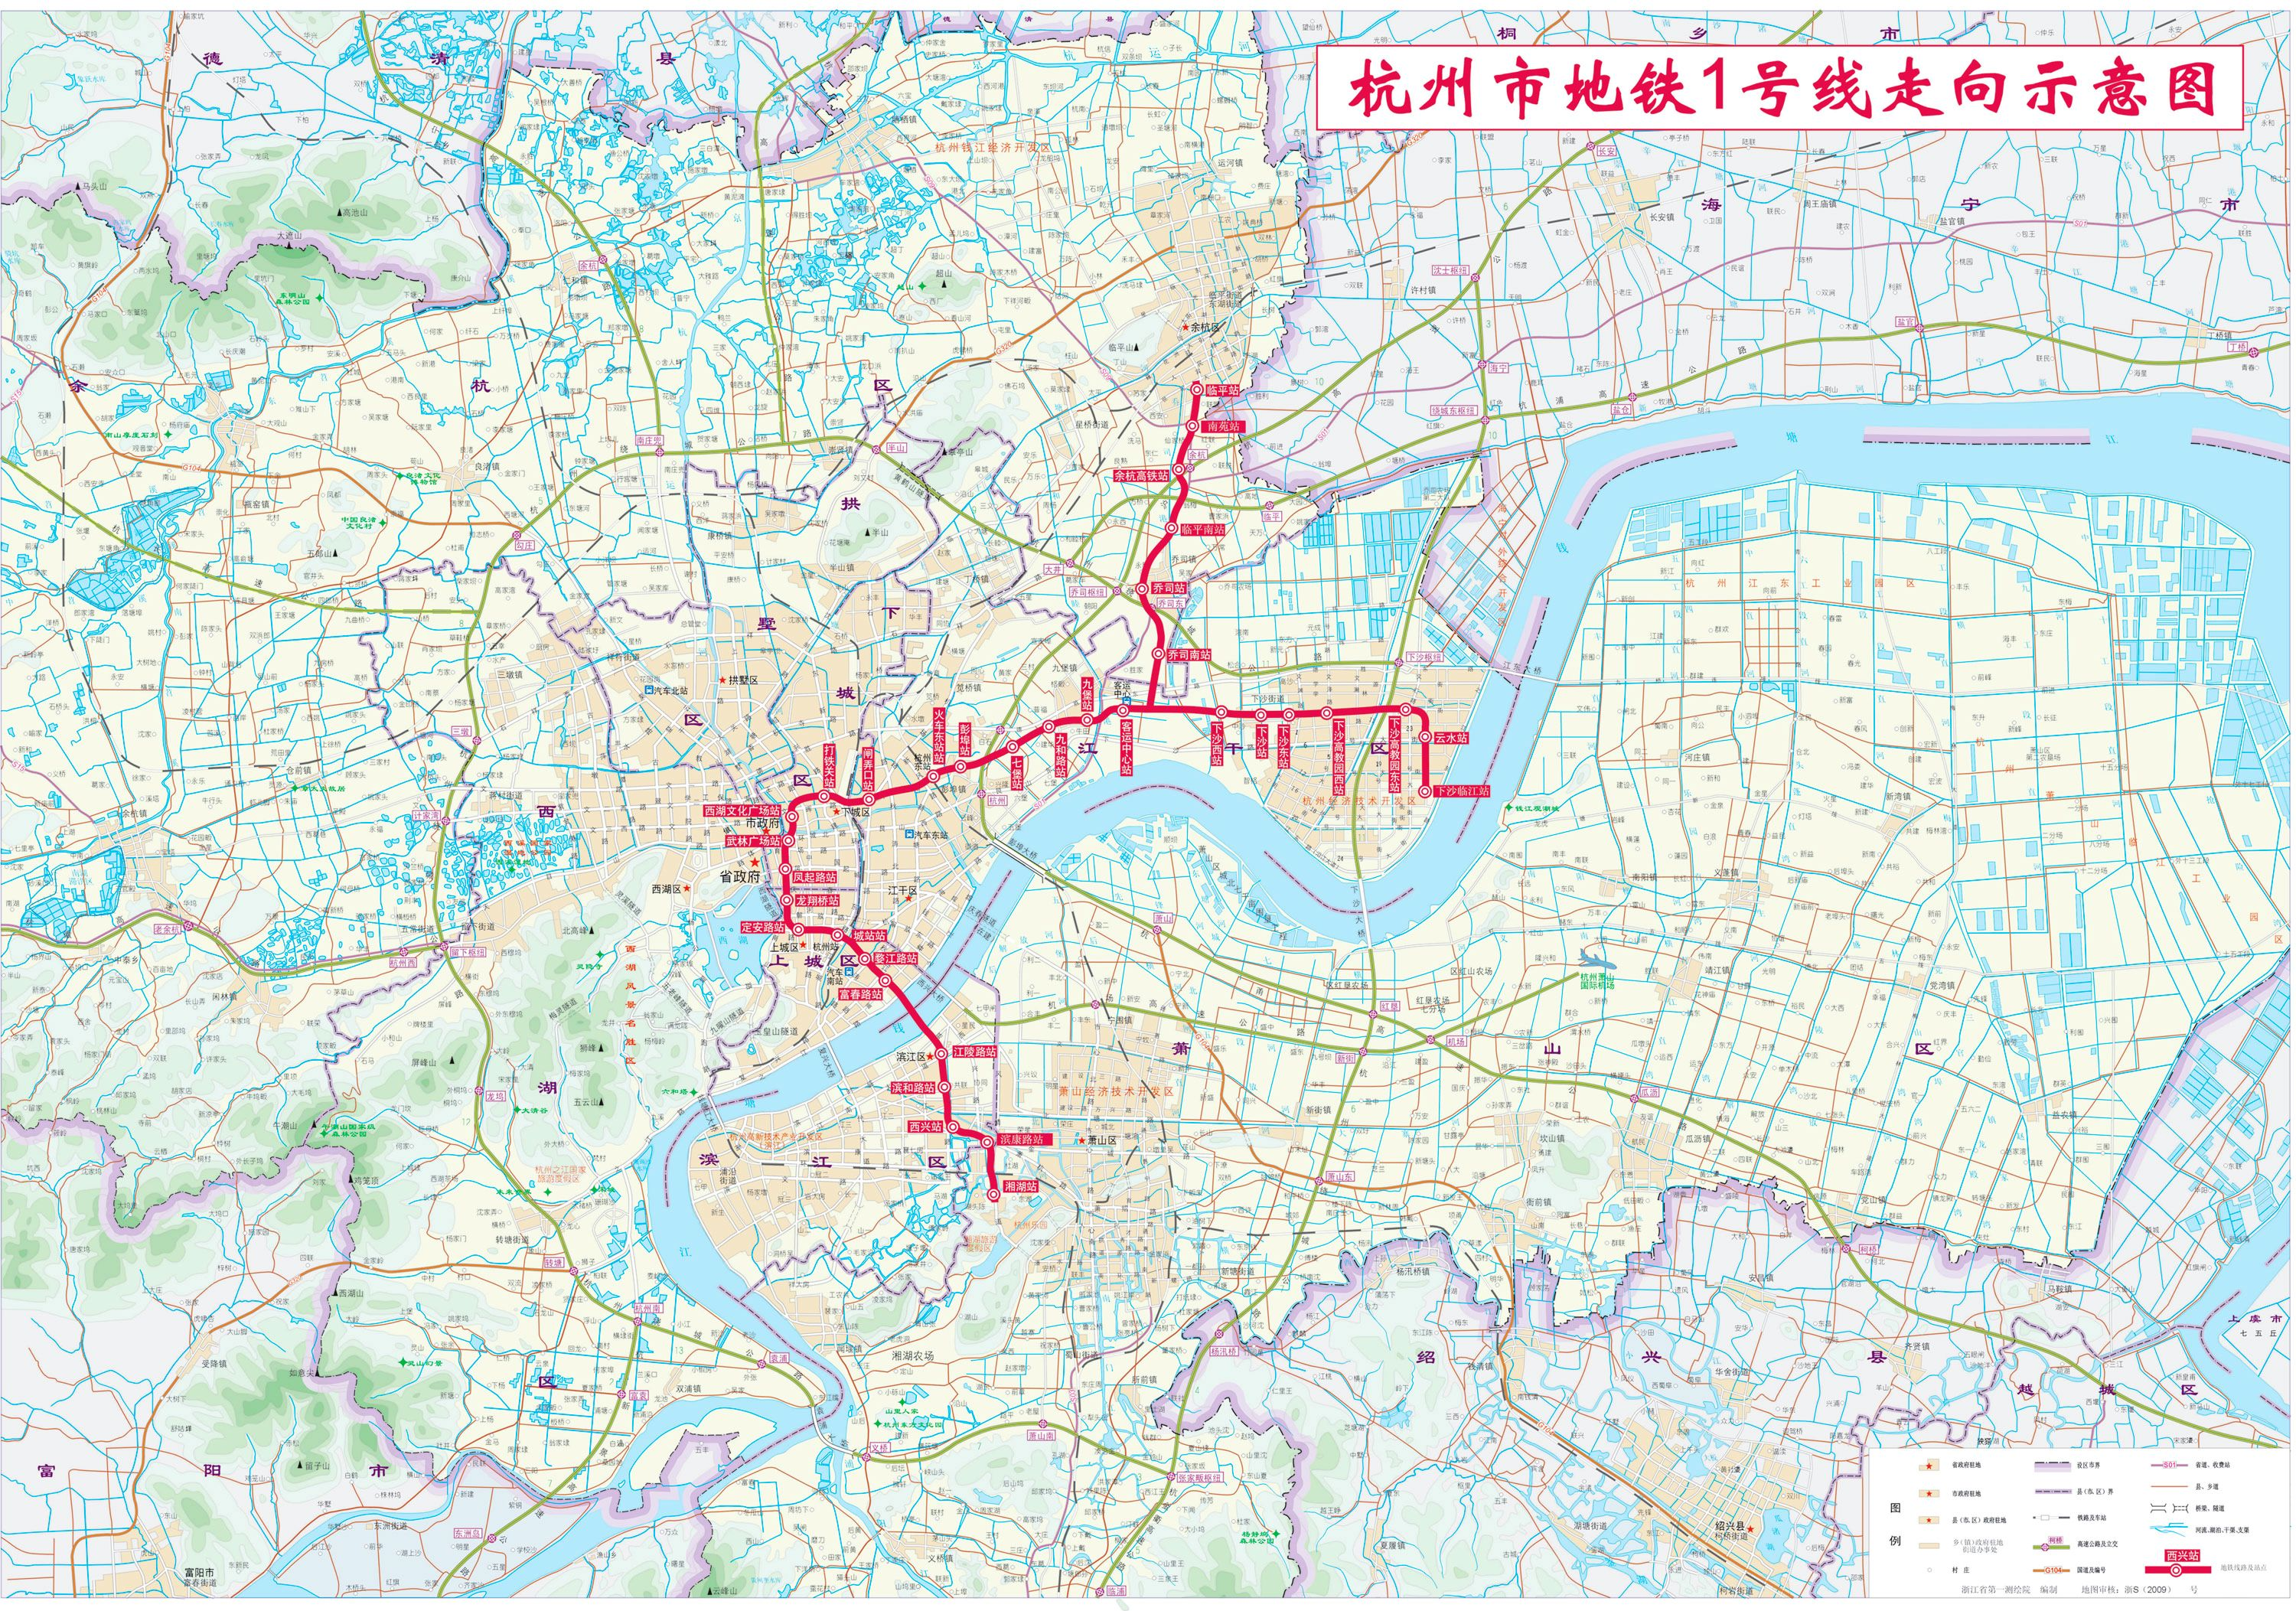 Hangzhou Subway Map.Hangzhou Subway Hangzhou Metro Maps Timetable Of 2013